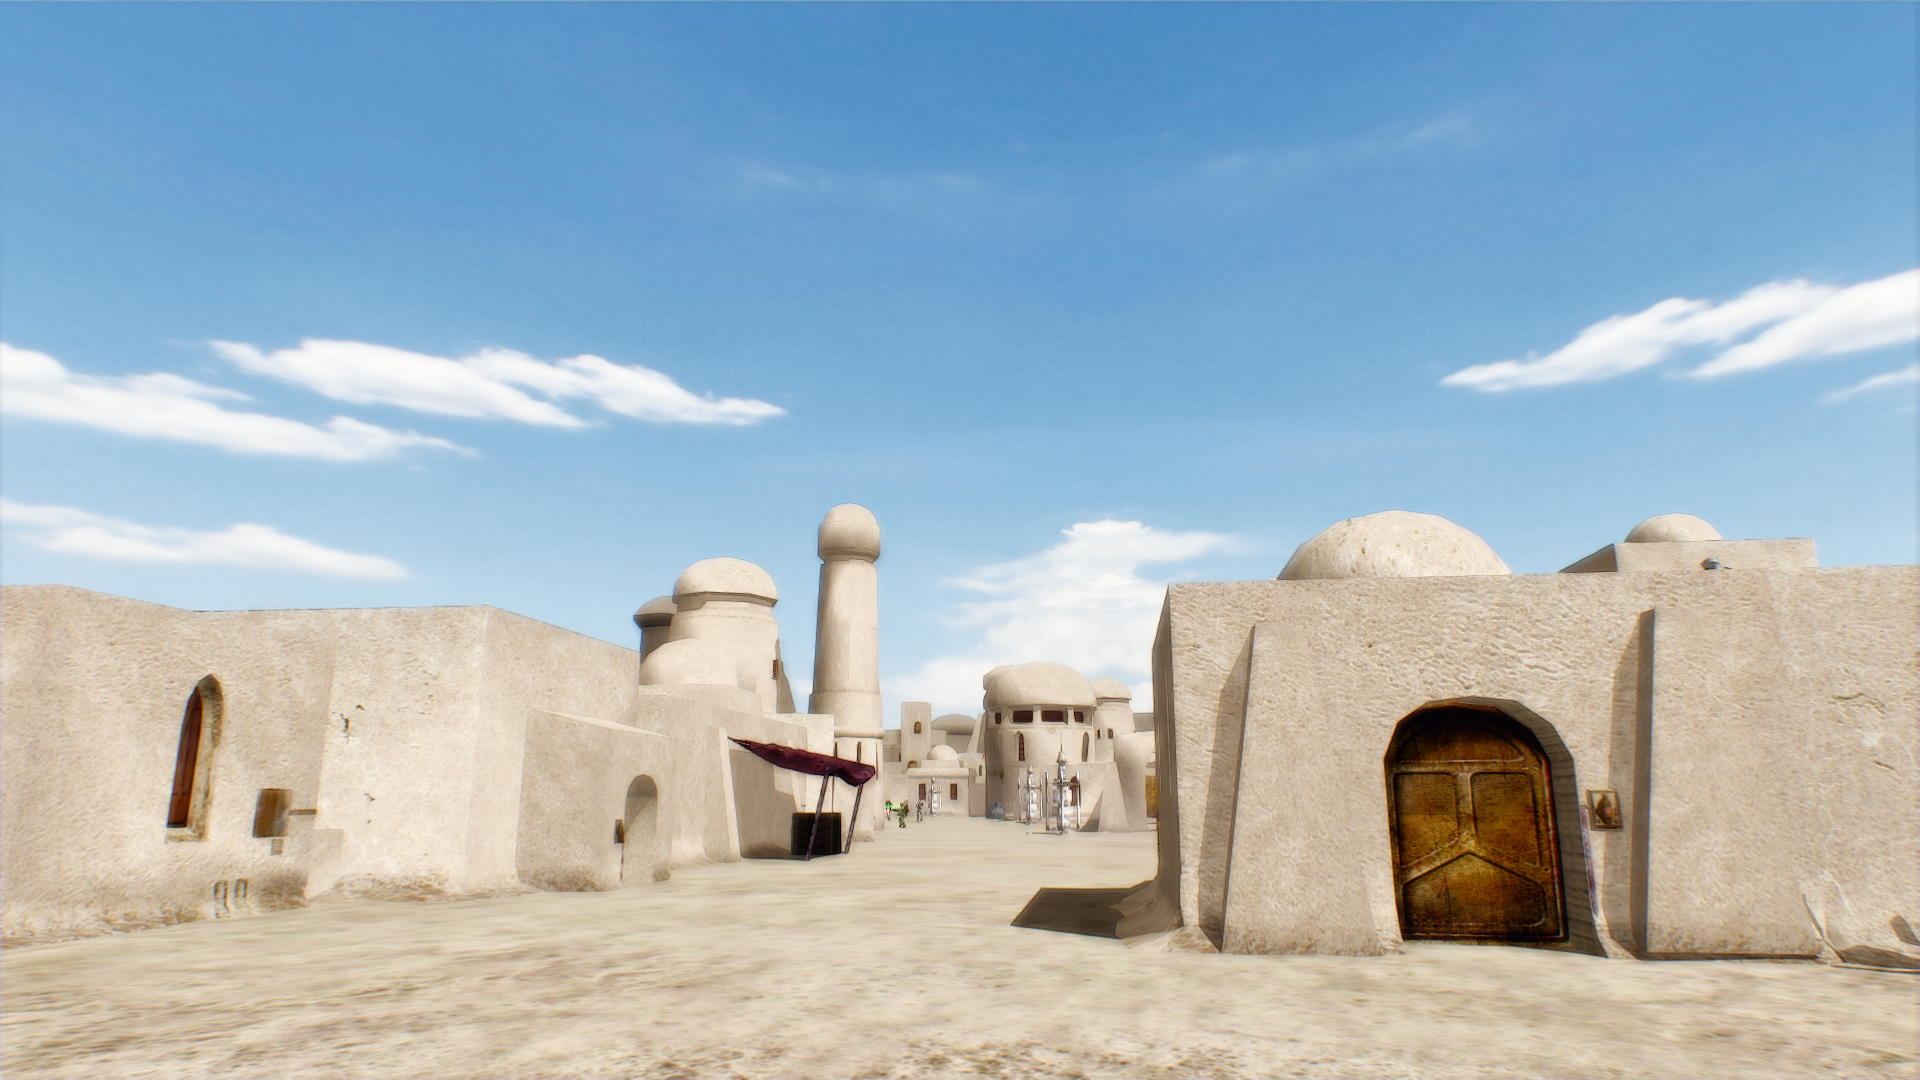 Star Wars: Battlefront 2 - Realistic Maps Mod - Star Wars: Battlefront 2 Мод